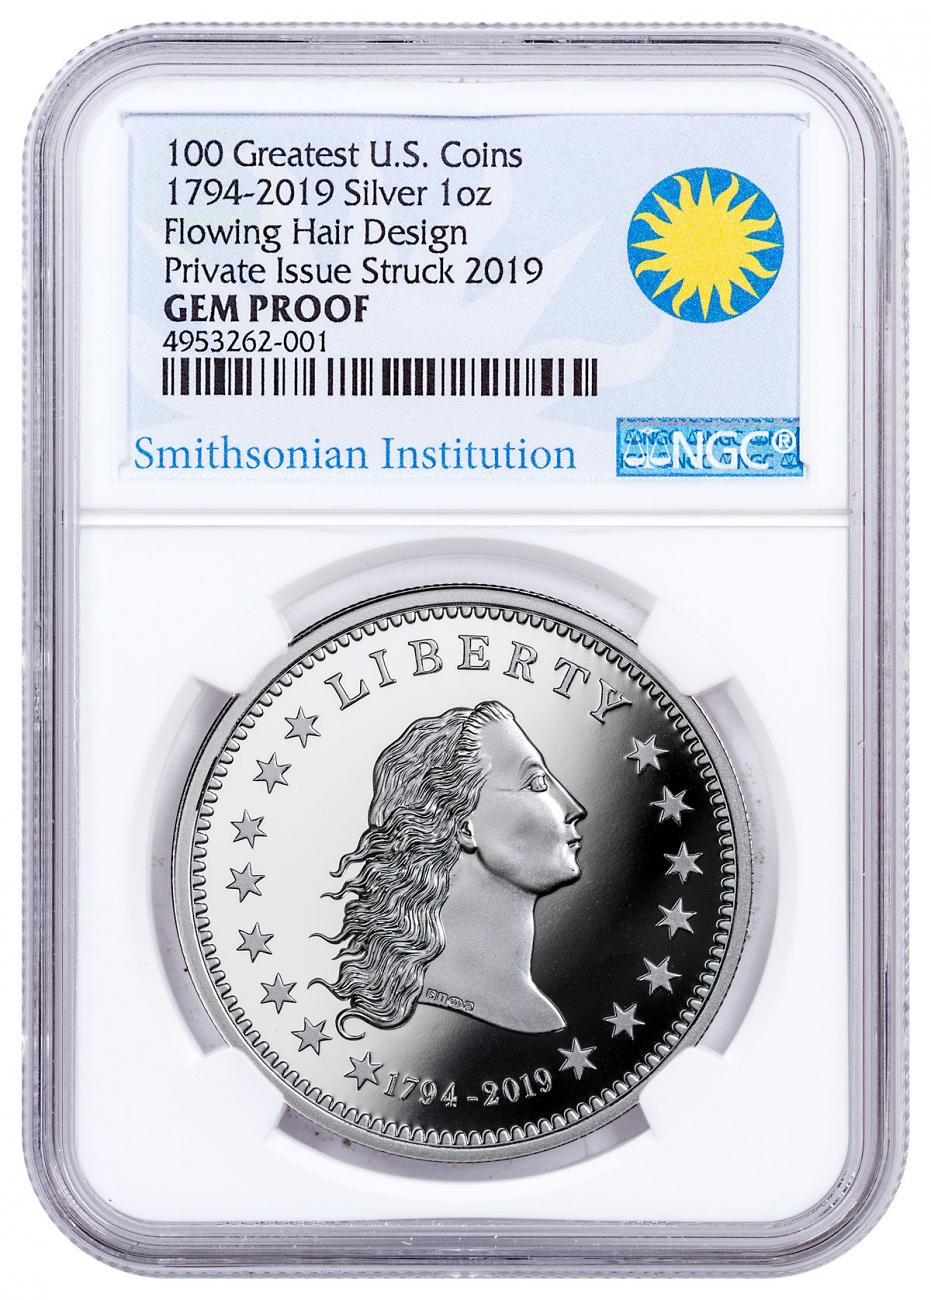 1794-2019 Smithsonian - America's First Silver Dollar 1 oz Silver Proof Medal NGC GEM Proof